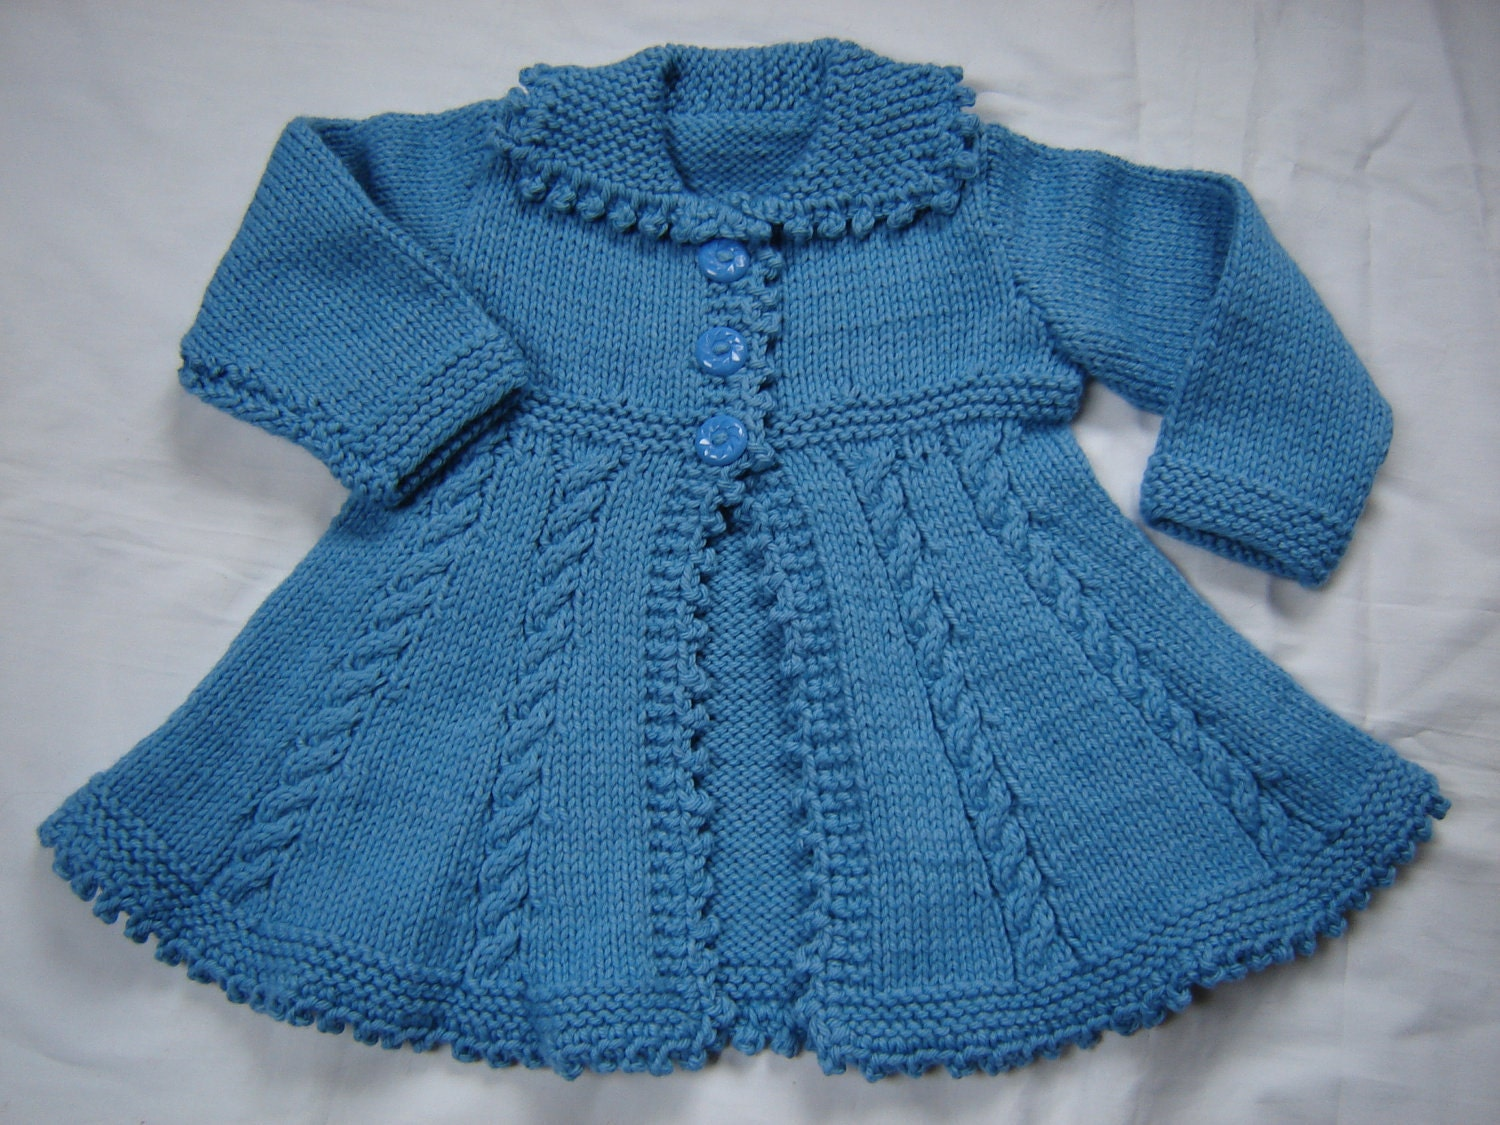 Swing Sweater Knitting Pattern : Baby Girl Toddler Sweater Coat Swing Style Hand Knit Crochet